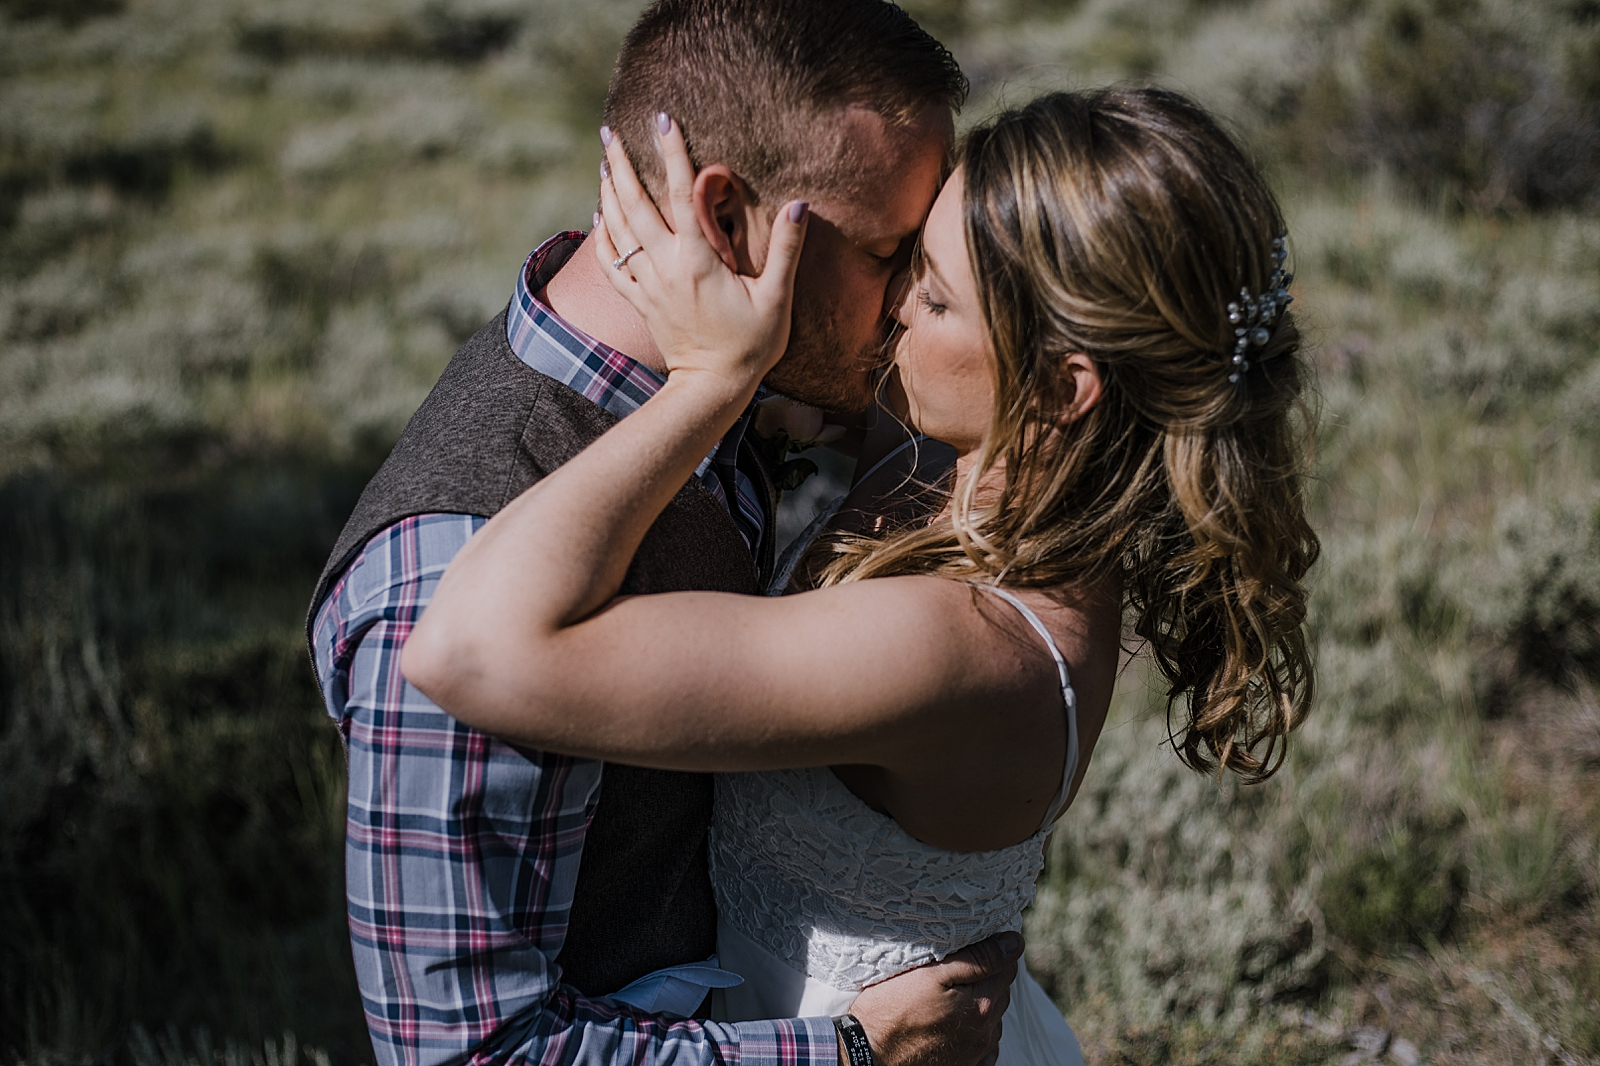 bride and groom kissing, RMNP elopement ceremony, rocky mountain national park elopement, 3M curves elopement, self solemnizing, self solemnization, long's peak, summer elopement, estes park elopement